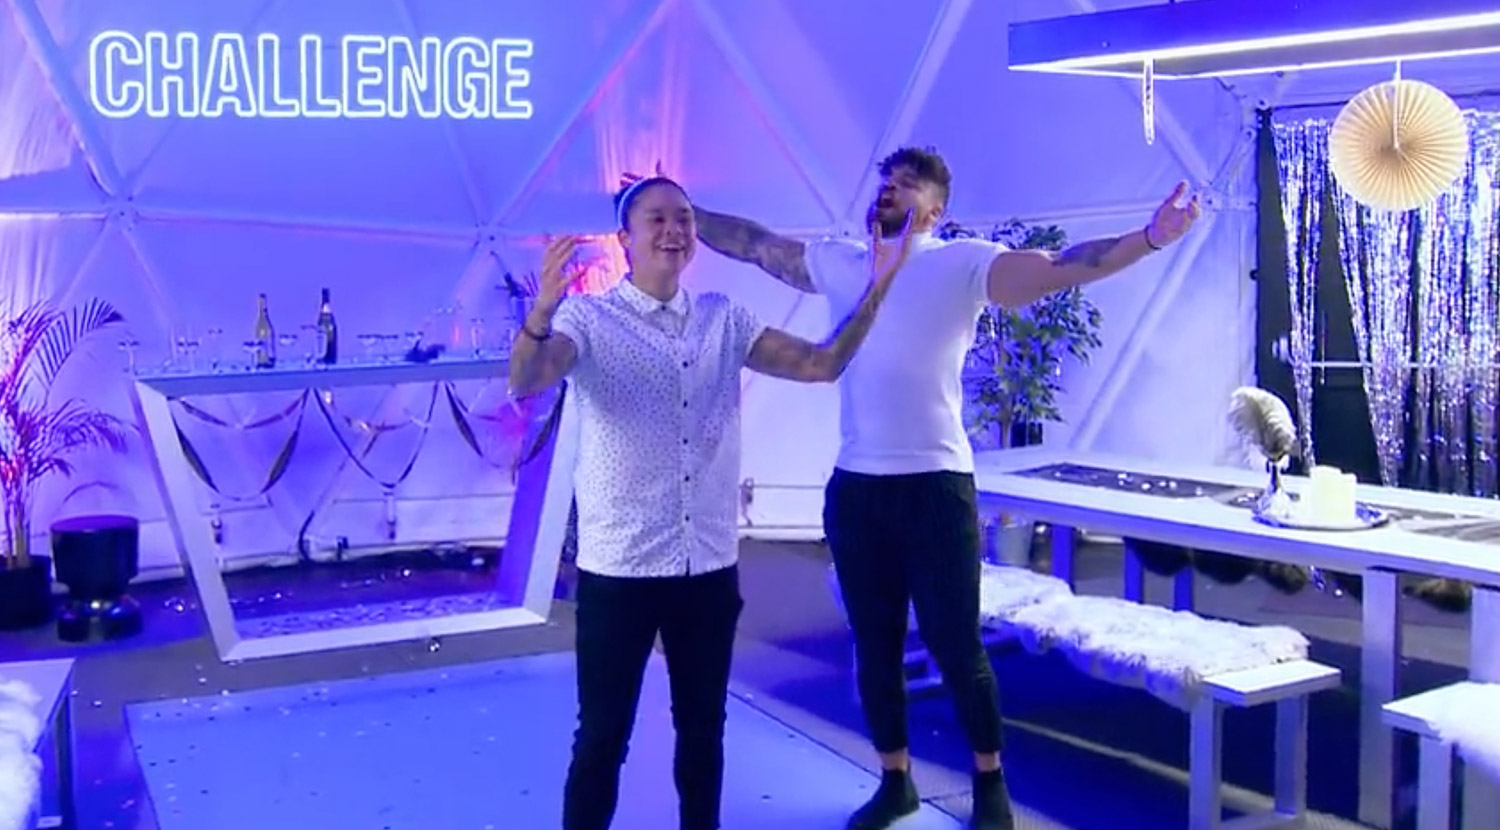 the challenge (screen grabs)